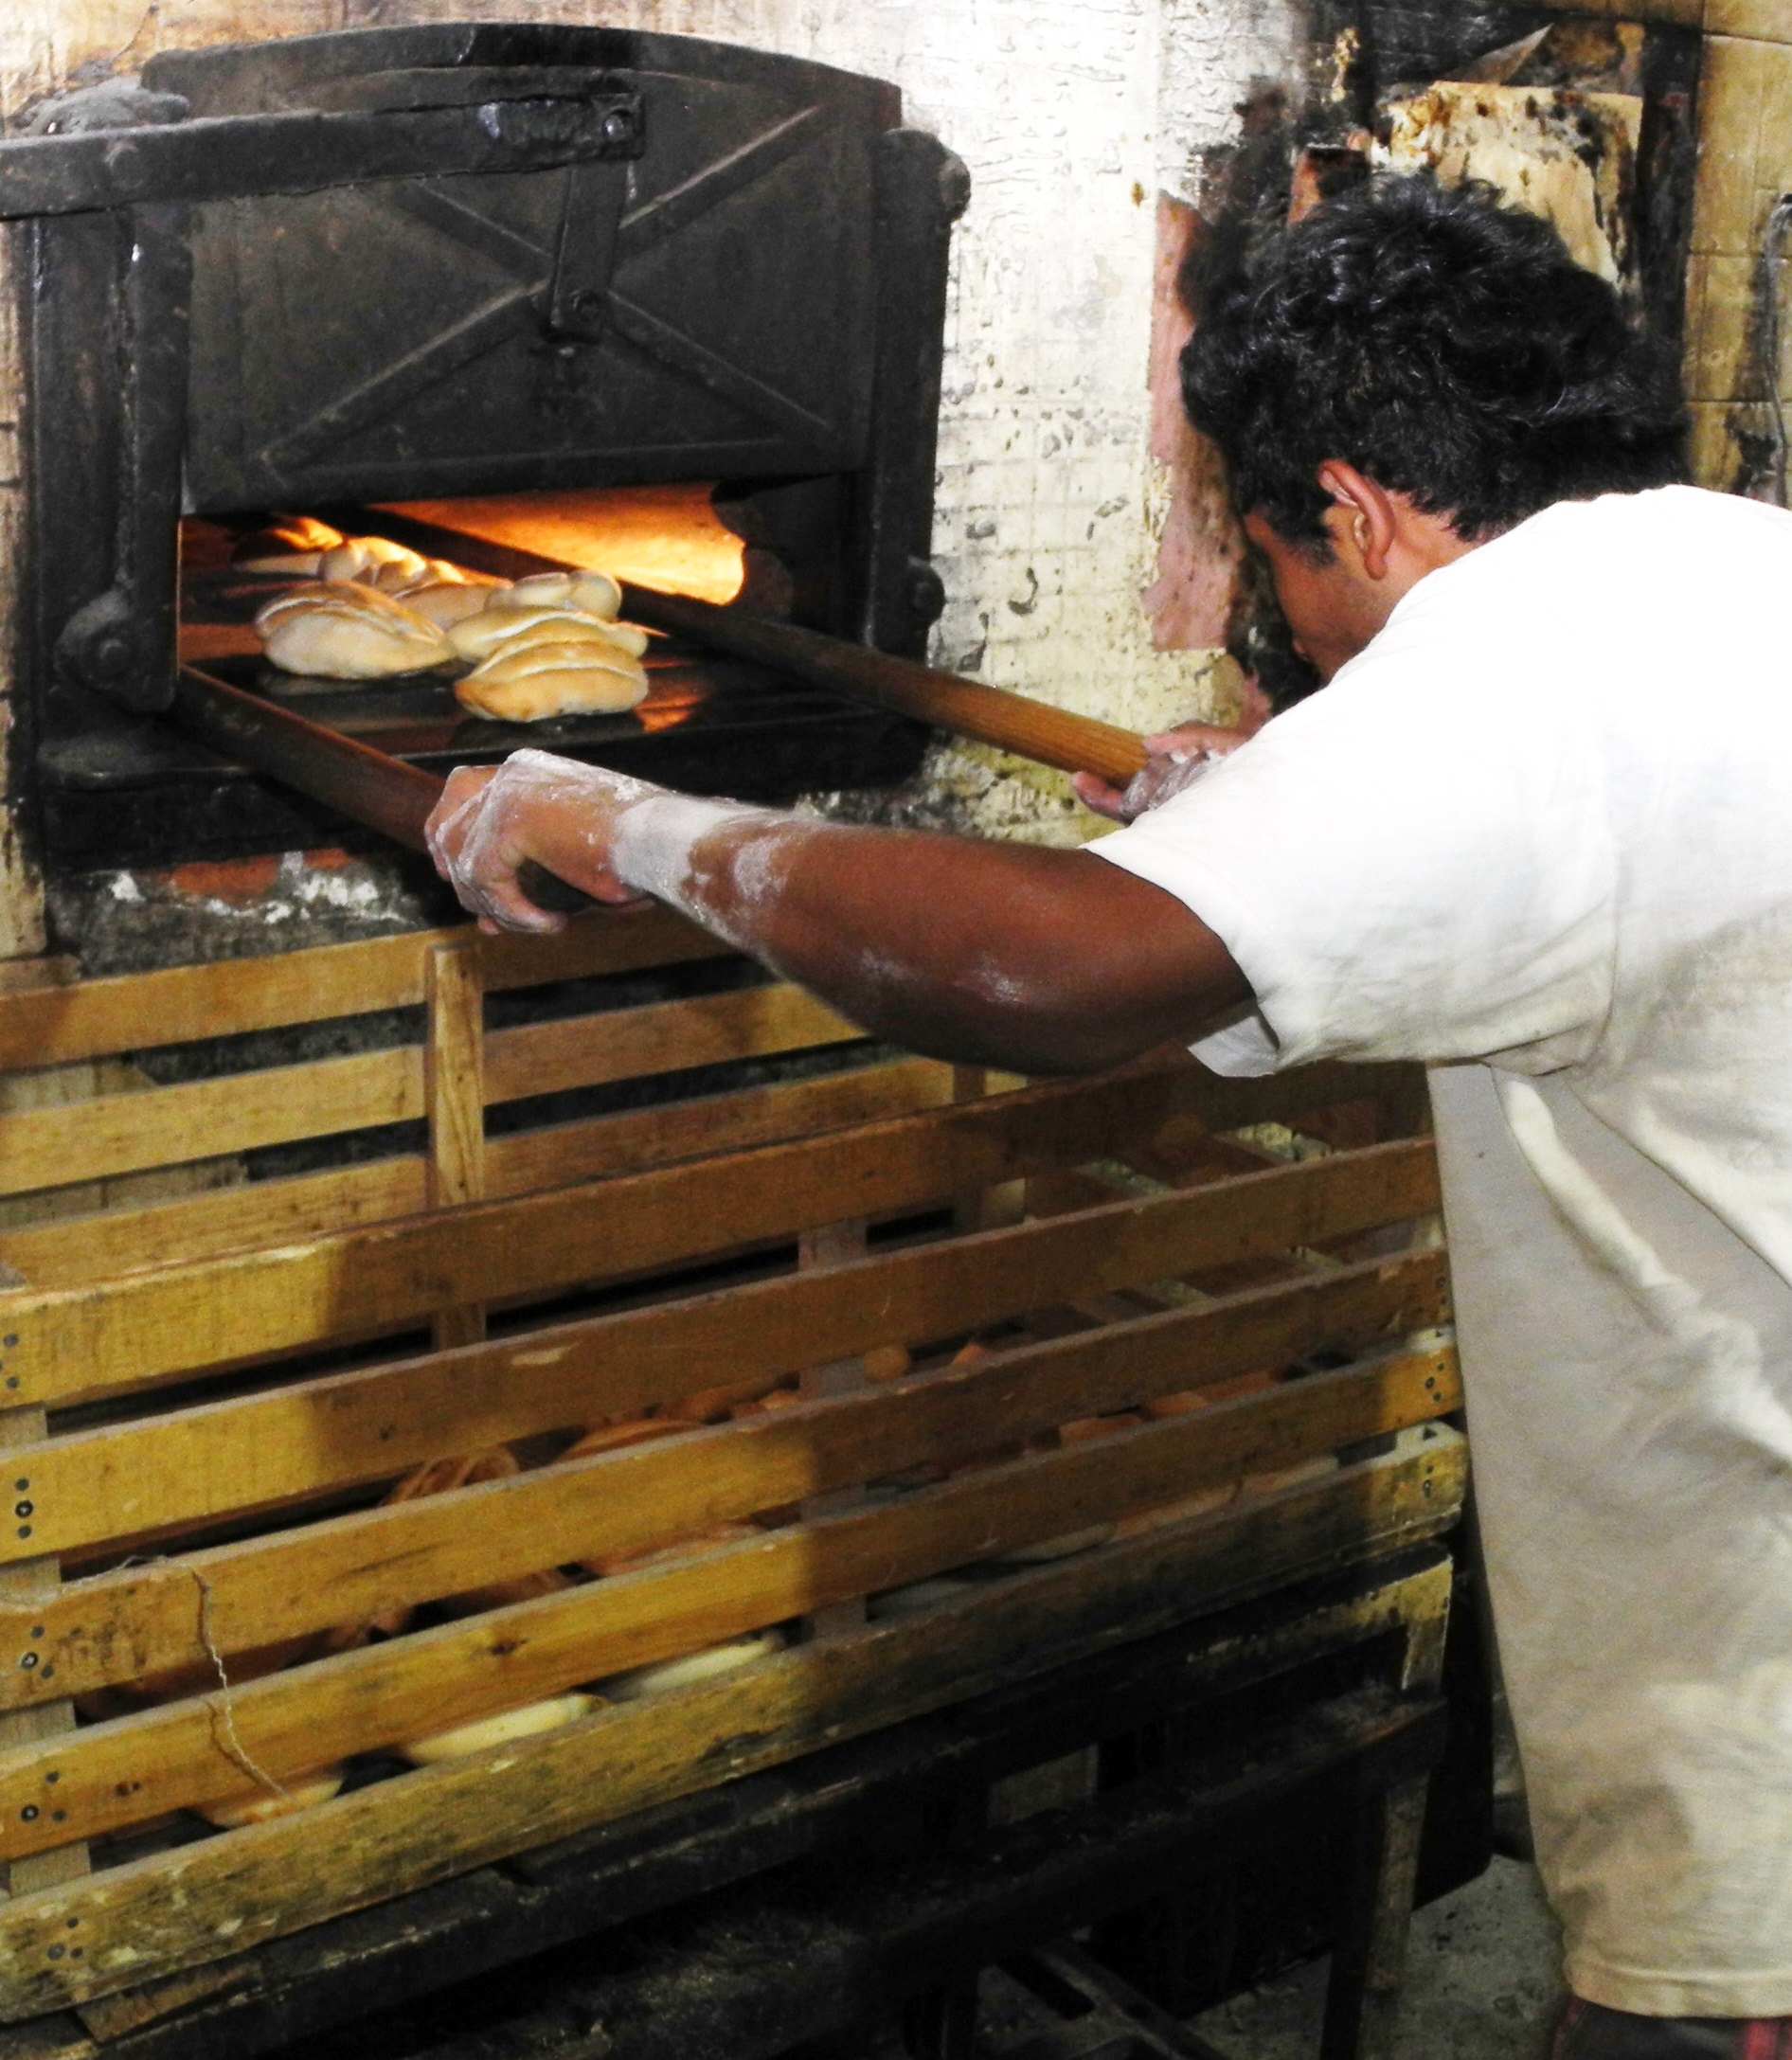 In addition to packaged commercial breads, small individual loaves prepared daily in neighborhood bakeries are standard fare in Mexico. Photo: Mike Listman/ CIMMYT